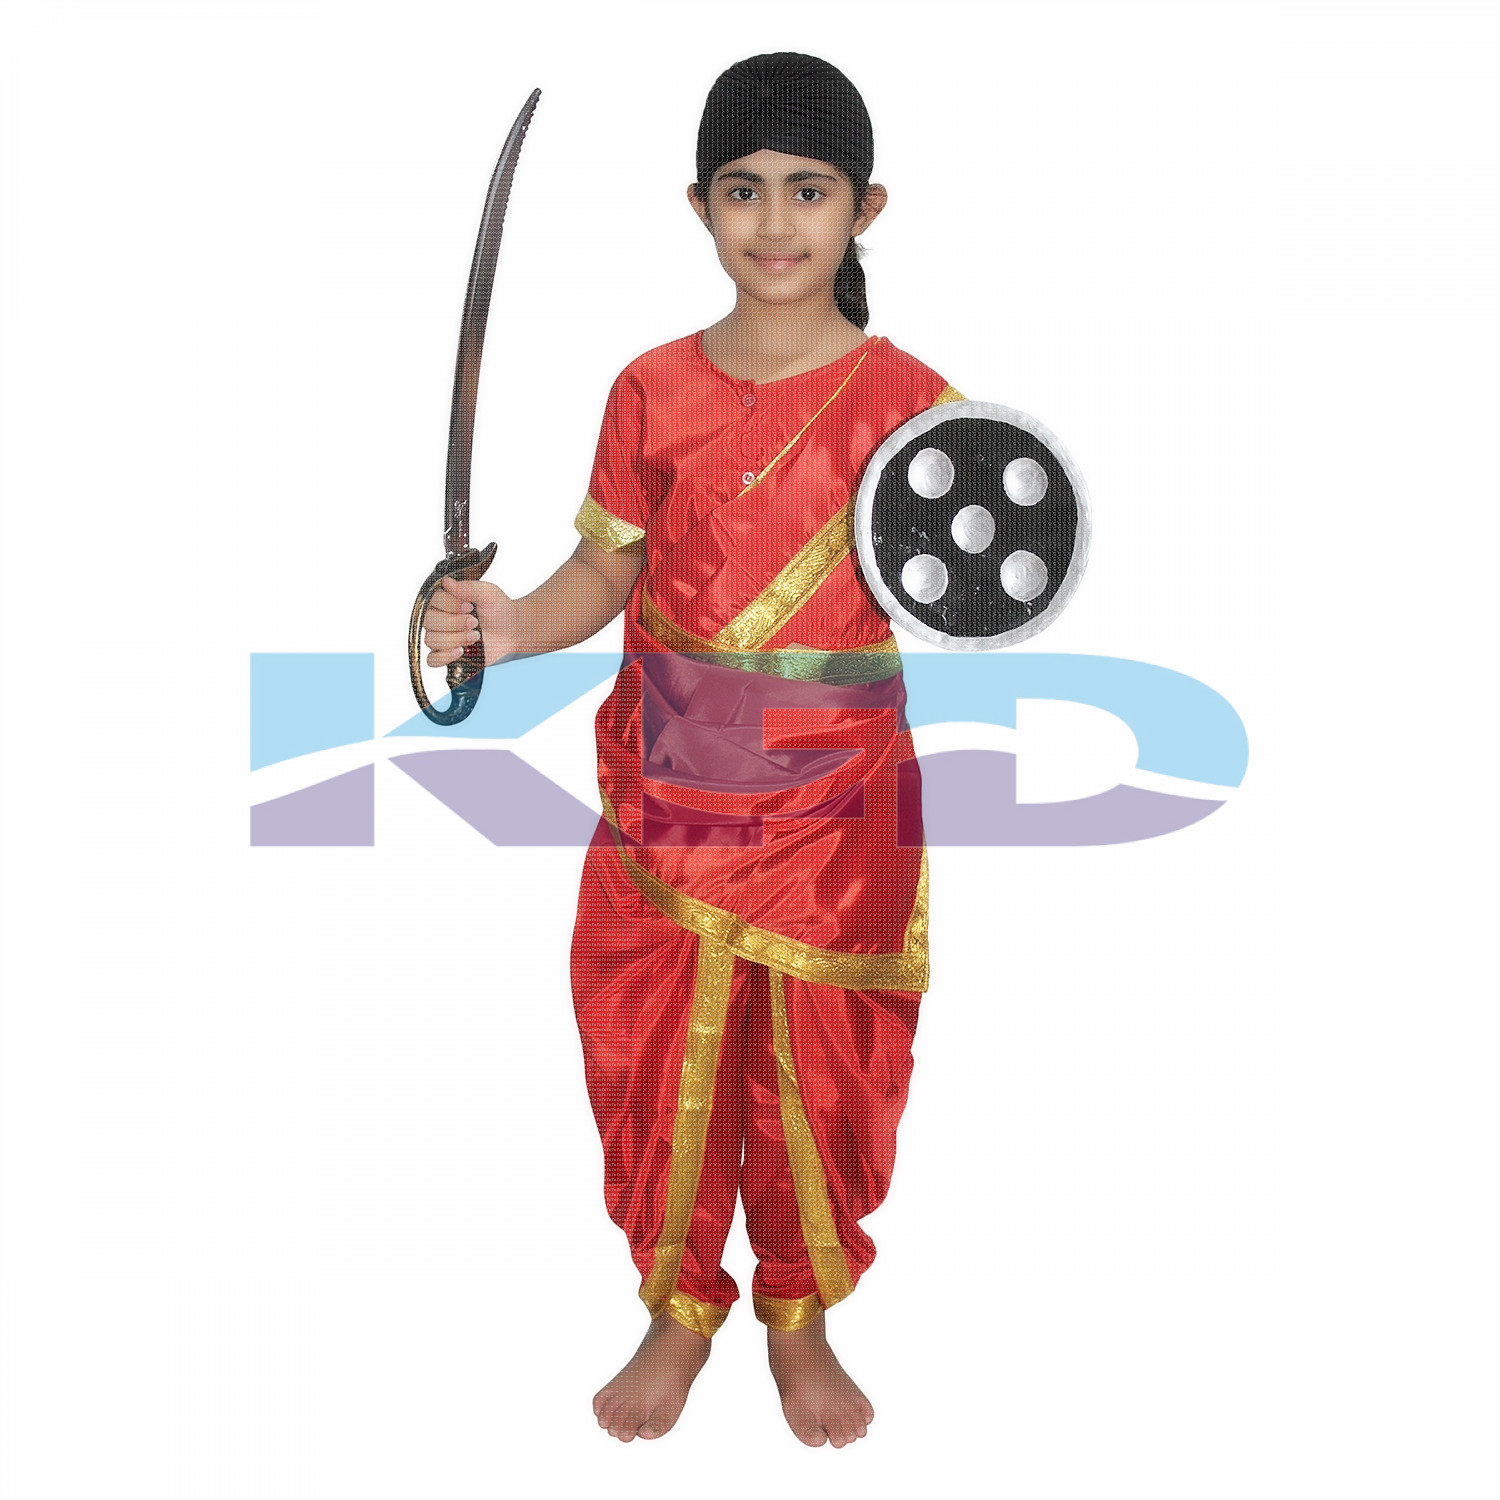 Rani Laxmi Bai Red National Hero/freedom figter Costume for Independence Day/Republic Day/Annual function/theme party/Competition/Stage Shows Dress